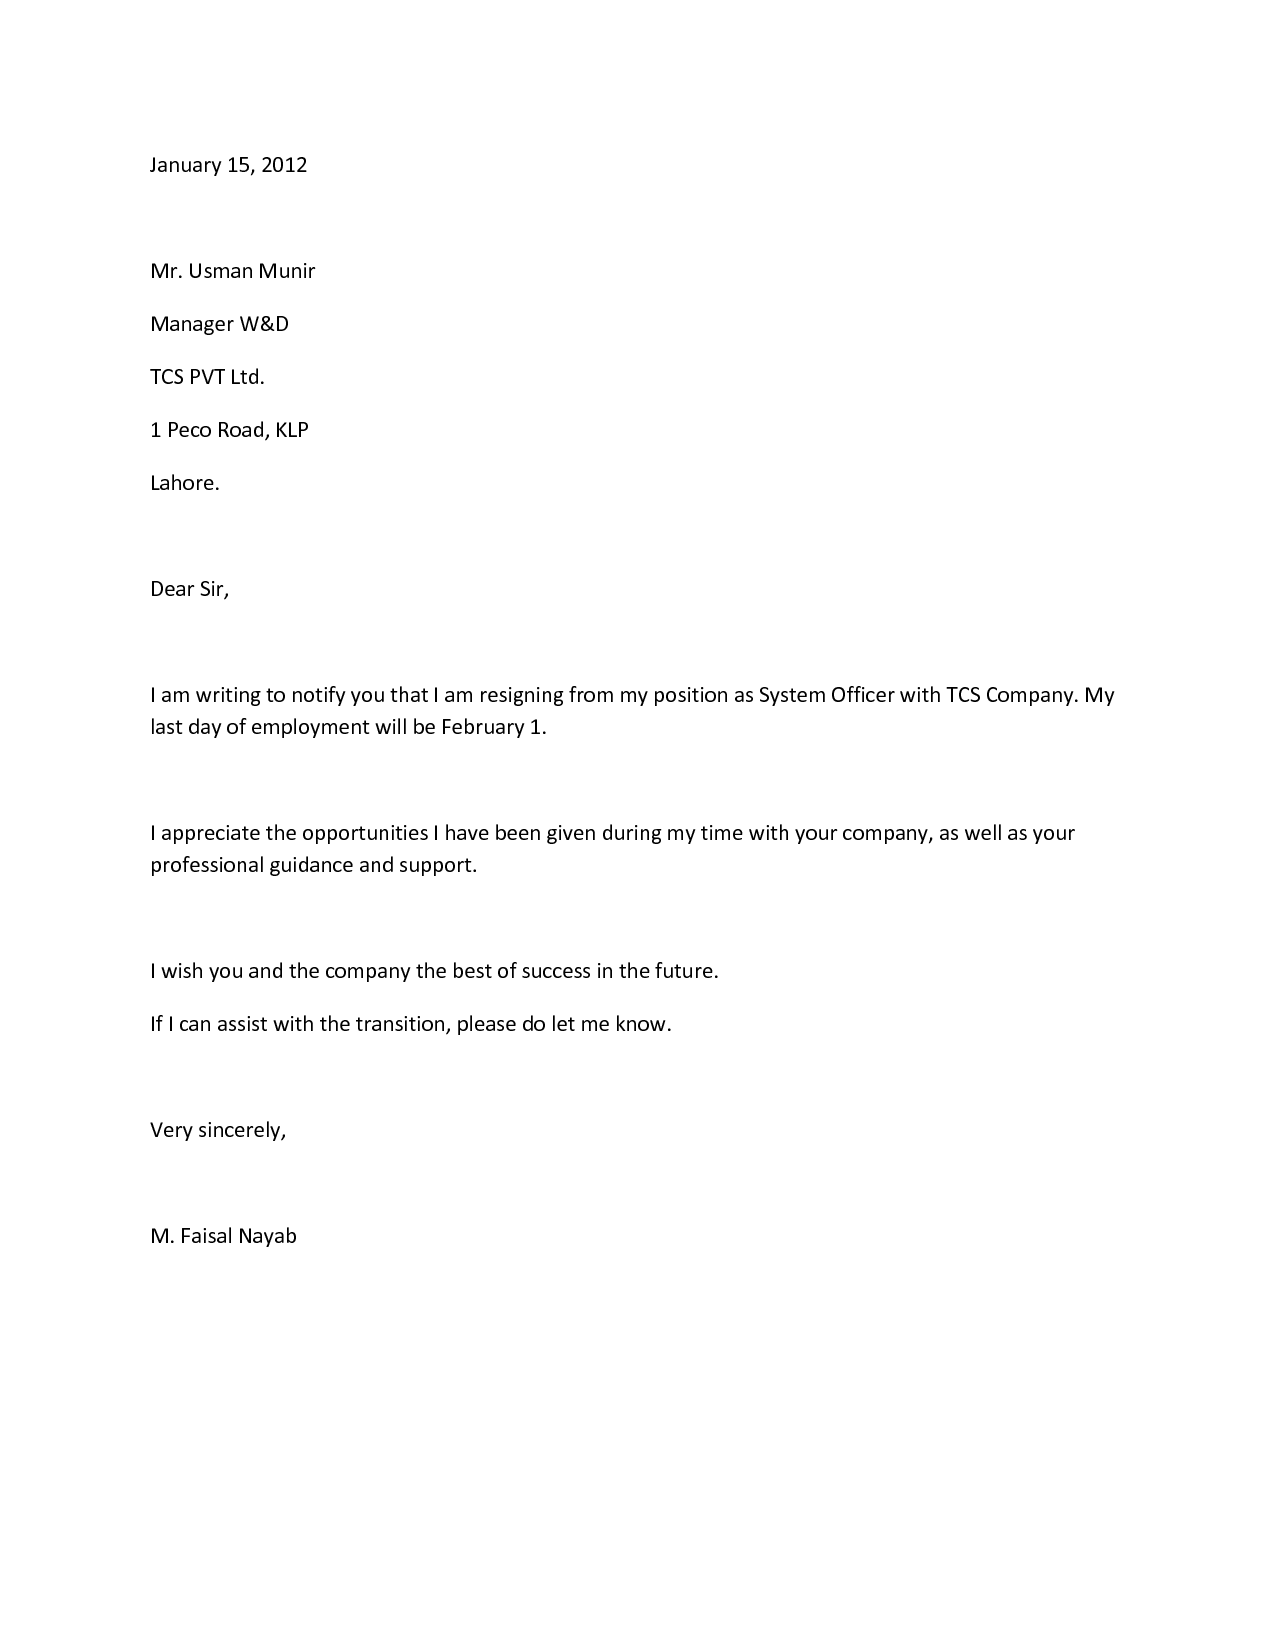 Get Letter Of Resignation Forms Free Printable With Premium